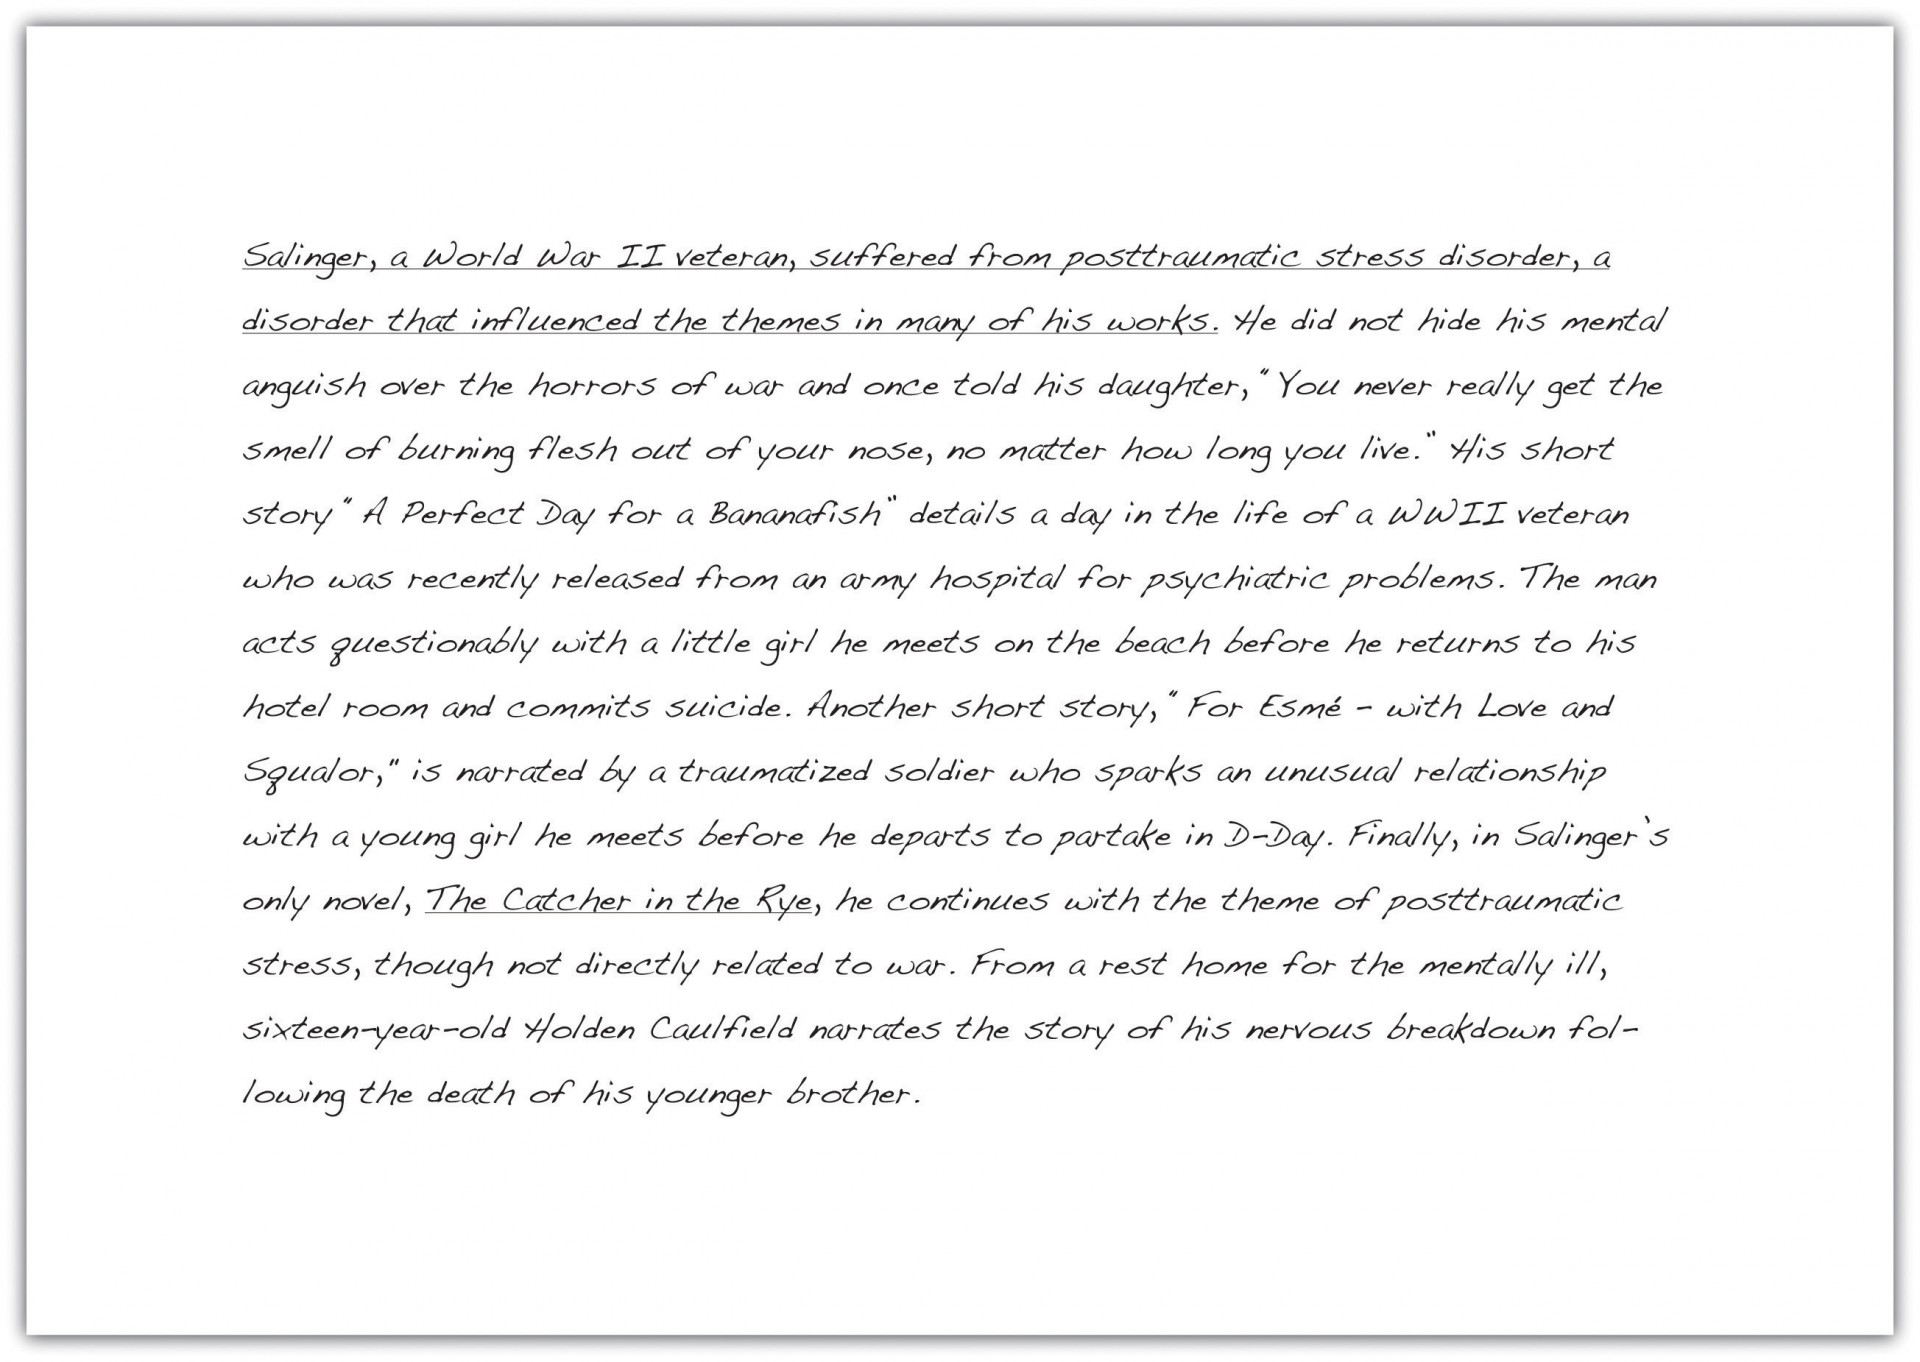 016 Essay Example On Amazing Bullying The Cause And Effect In School Of Cyberbullying 1920